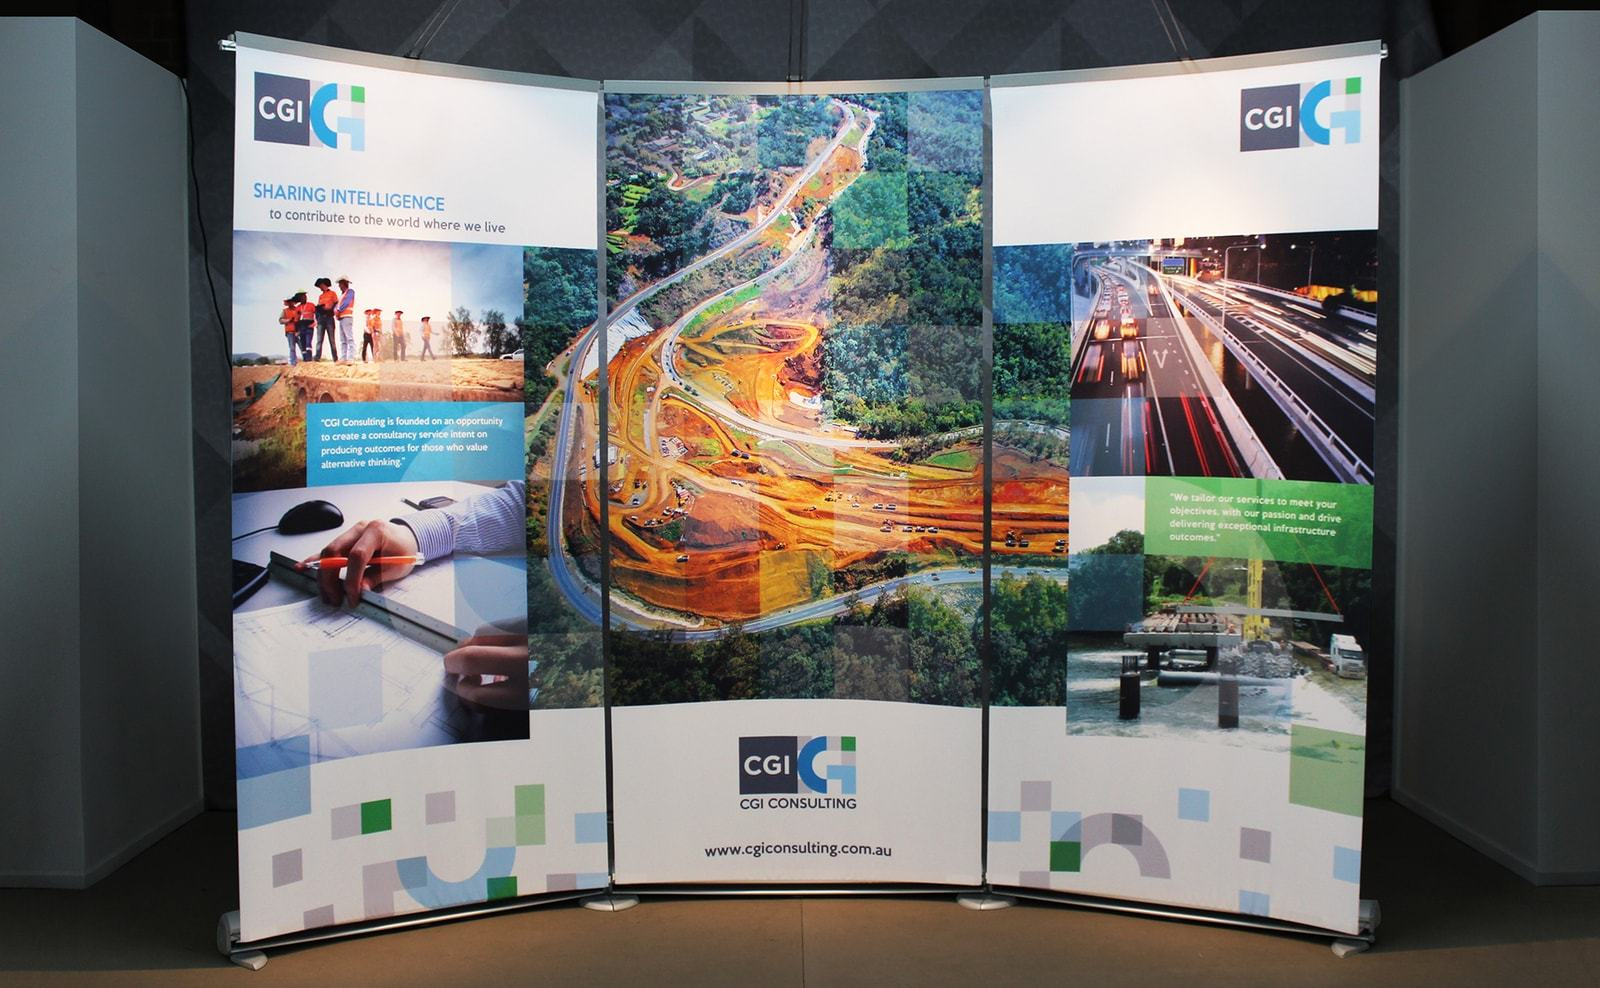 cgi consulting banner stand display - Banner Design Ideas